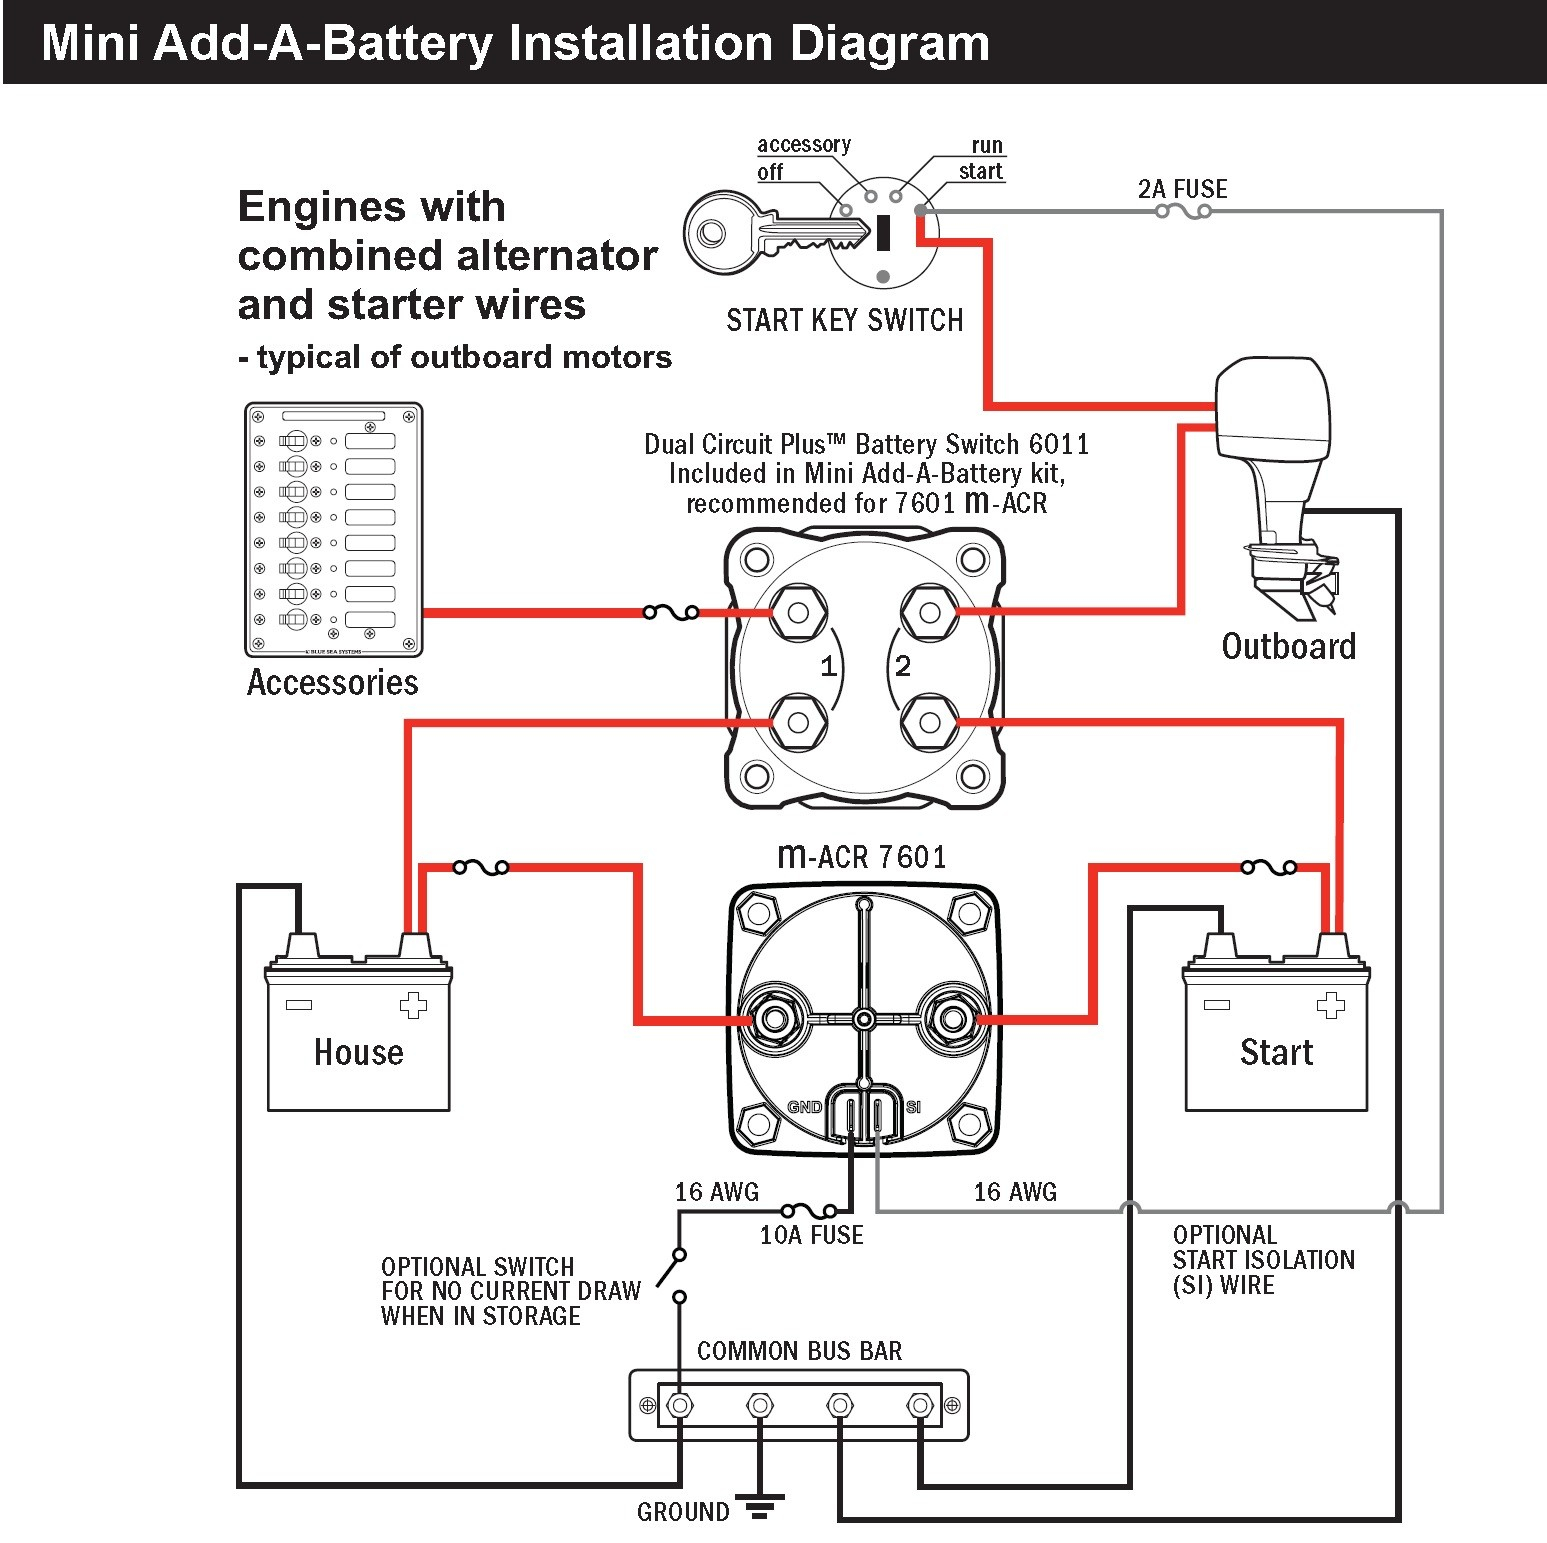 add a phase wiring diagram Download-Wiring Diagram Roller Shutter Key Switch Best Typical Motor Wiring Diagrams Single Phase Capacitor Inside somfy 16-t